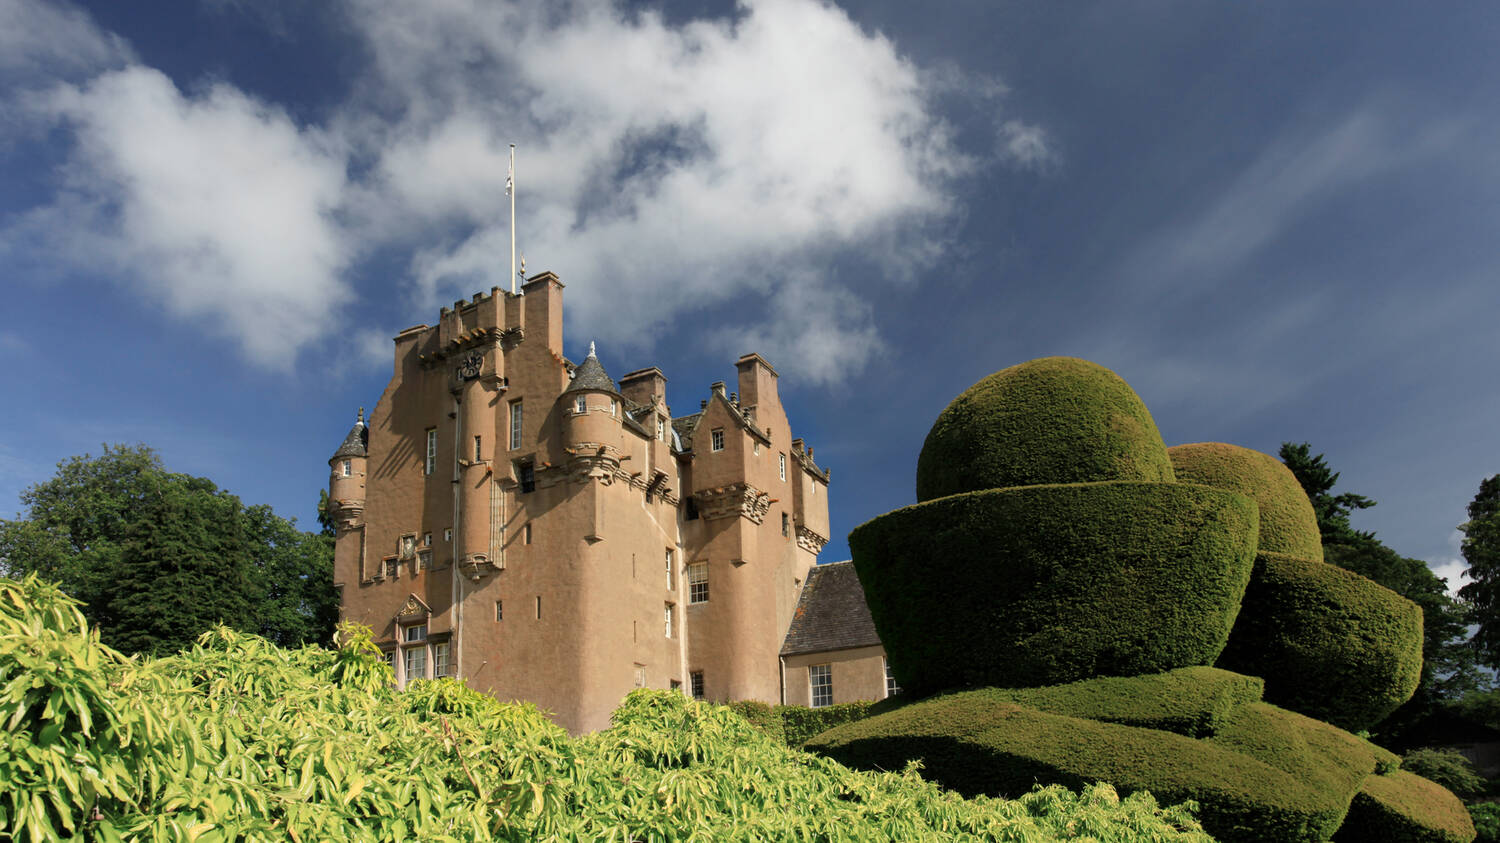 Crathes Castle in the summer, with clipped hedges in the foreground